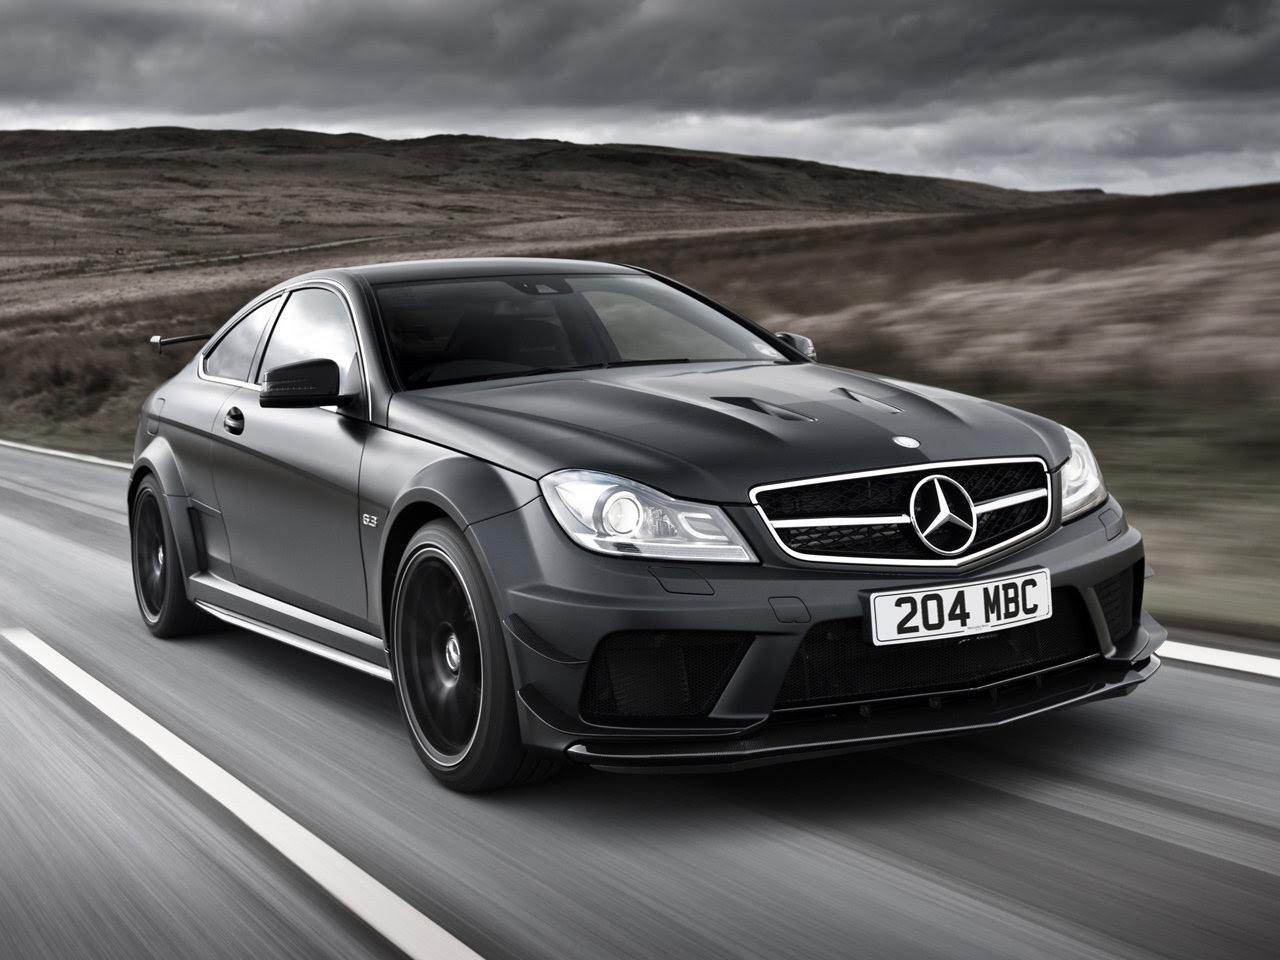 2013 Mercedes C63 AMG Black Series Coupe - Picture 450529 ...